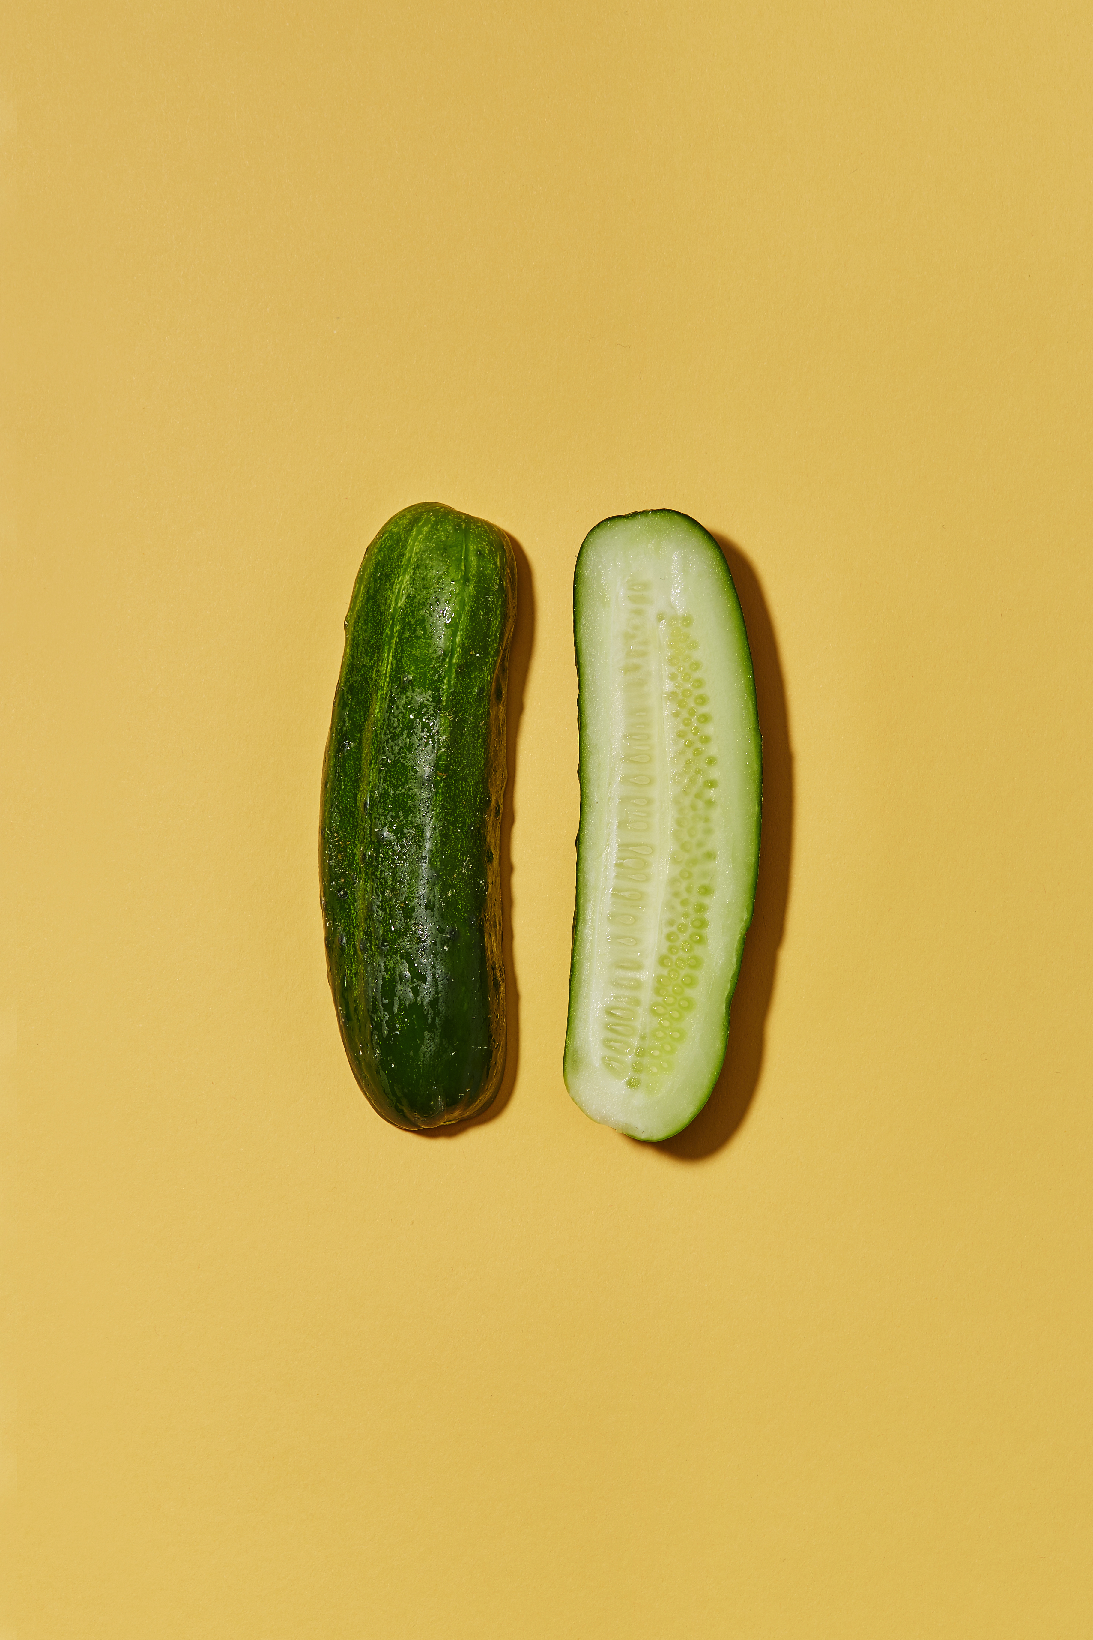 pickles-blog-cucumber-on-yellow-v1-FINAL.jpg